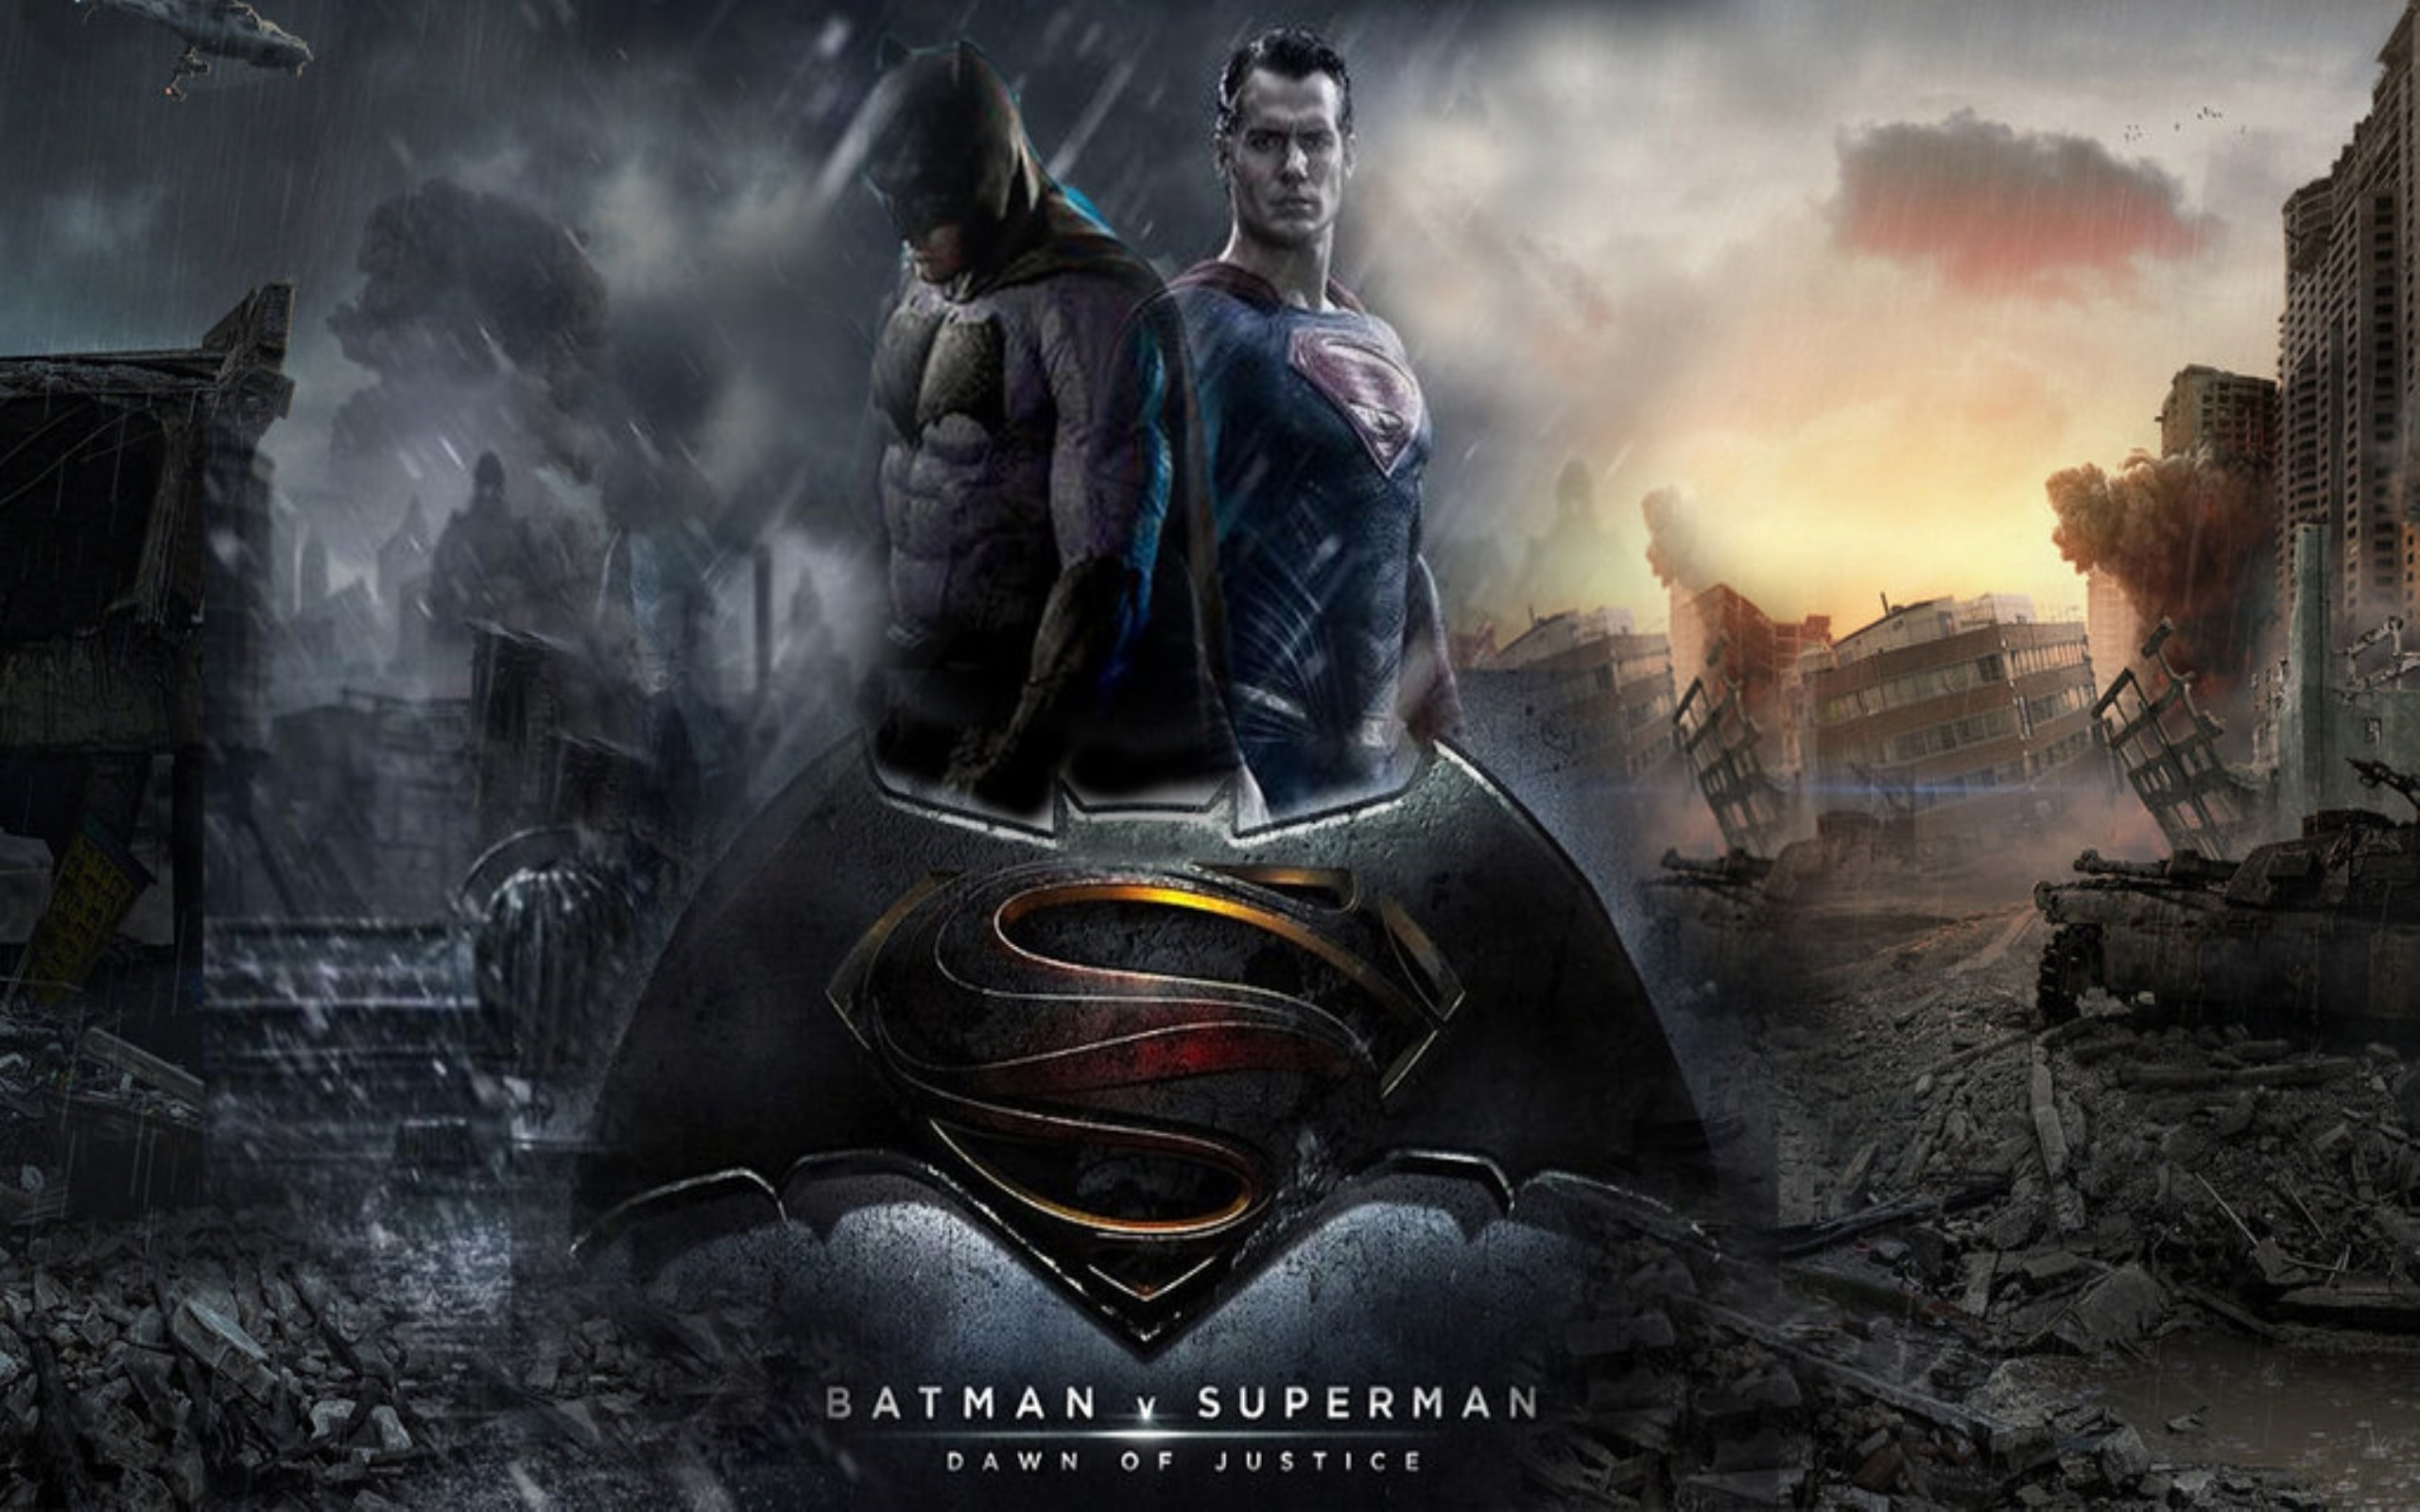 Batman Vs Superman: Dawn Of Justice Wallpaper